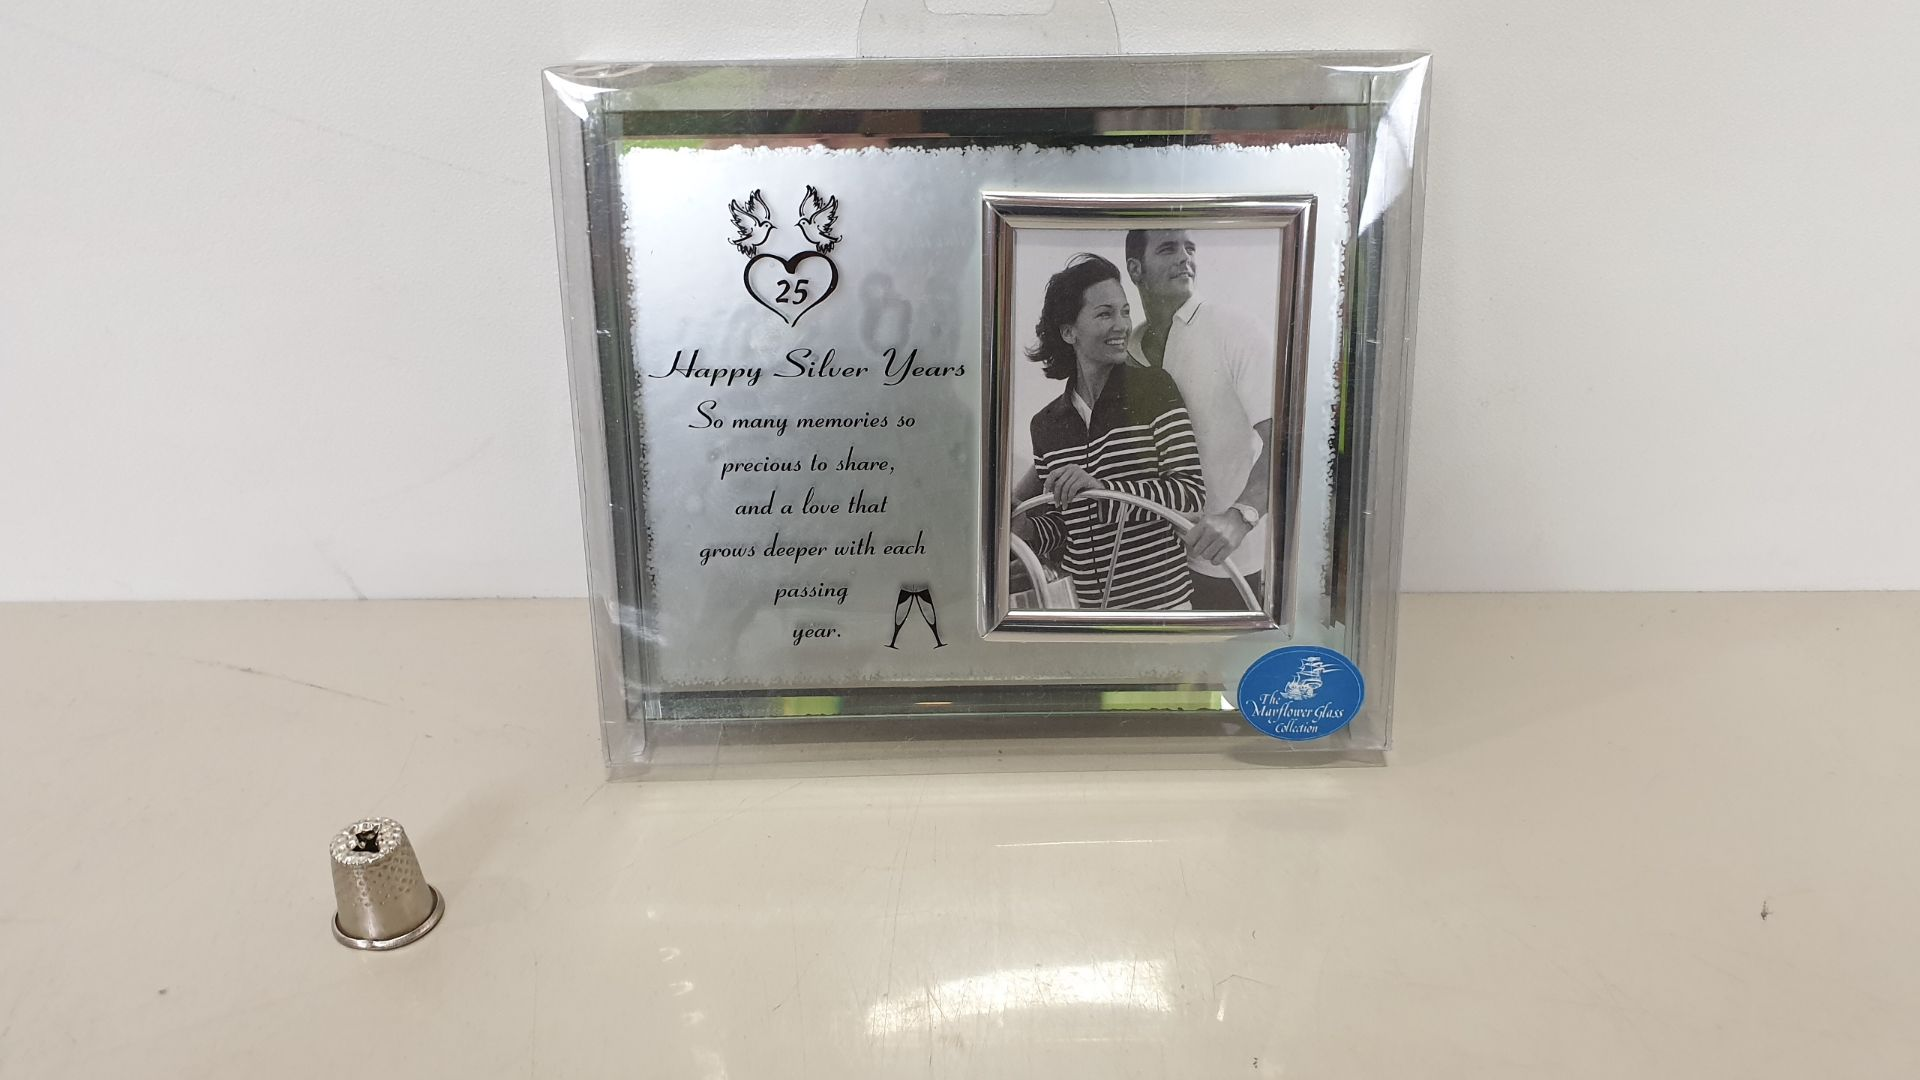 Lot 638 - 144 X BRAND NEW 'THE MAYFLOWER GLASS COLLECTION' SILVER ANNIVERSARY FRAME 'HAPPY SILVER YEARS' -